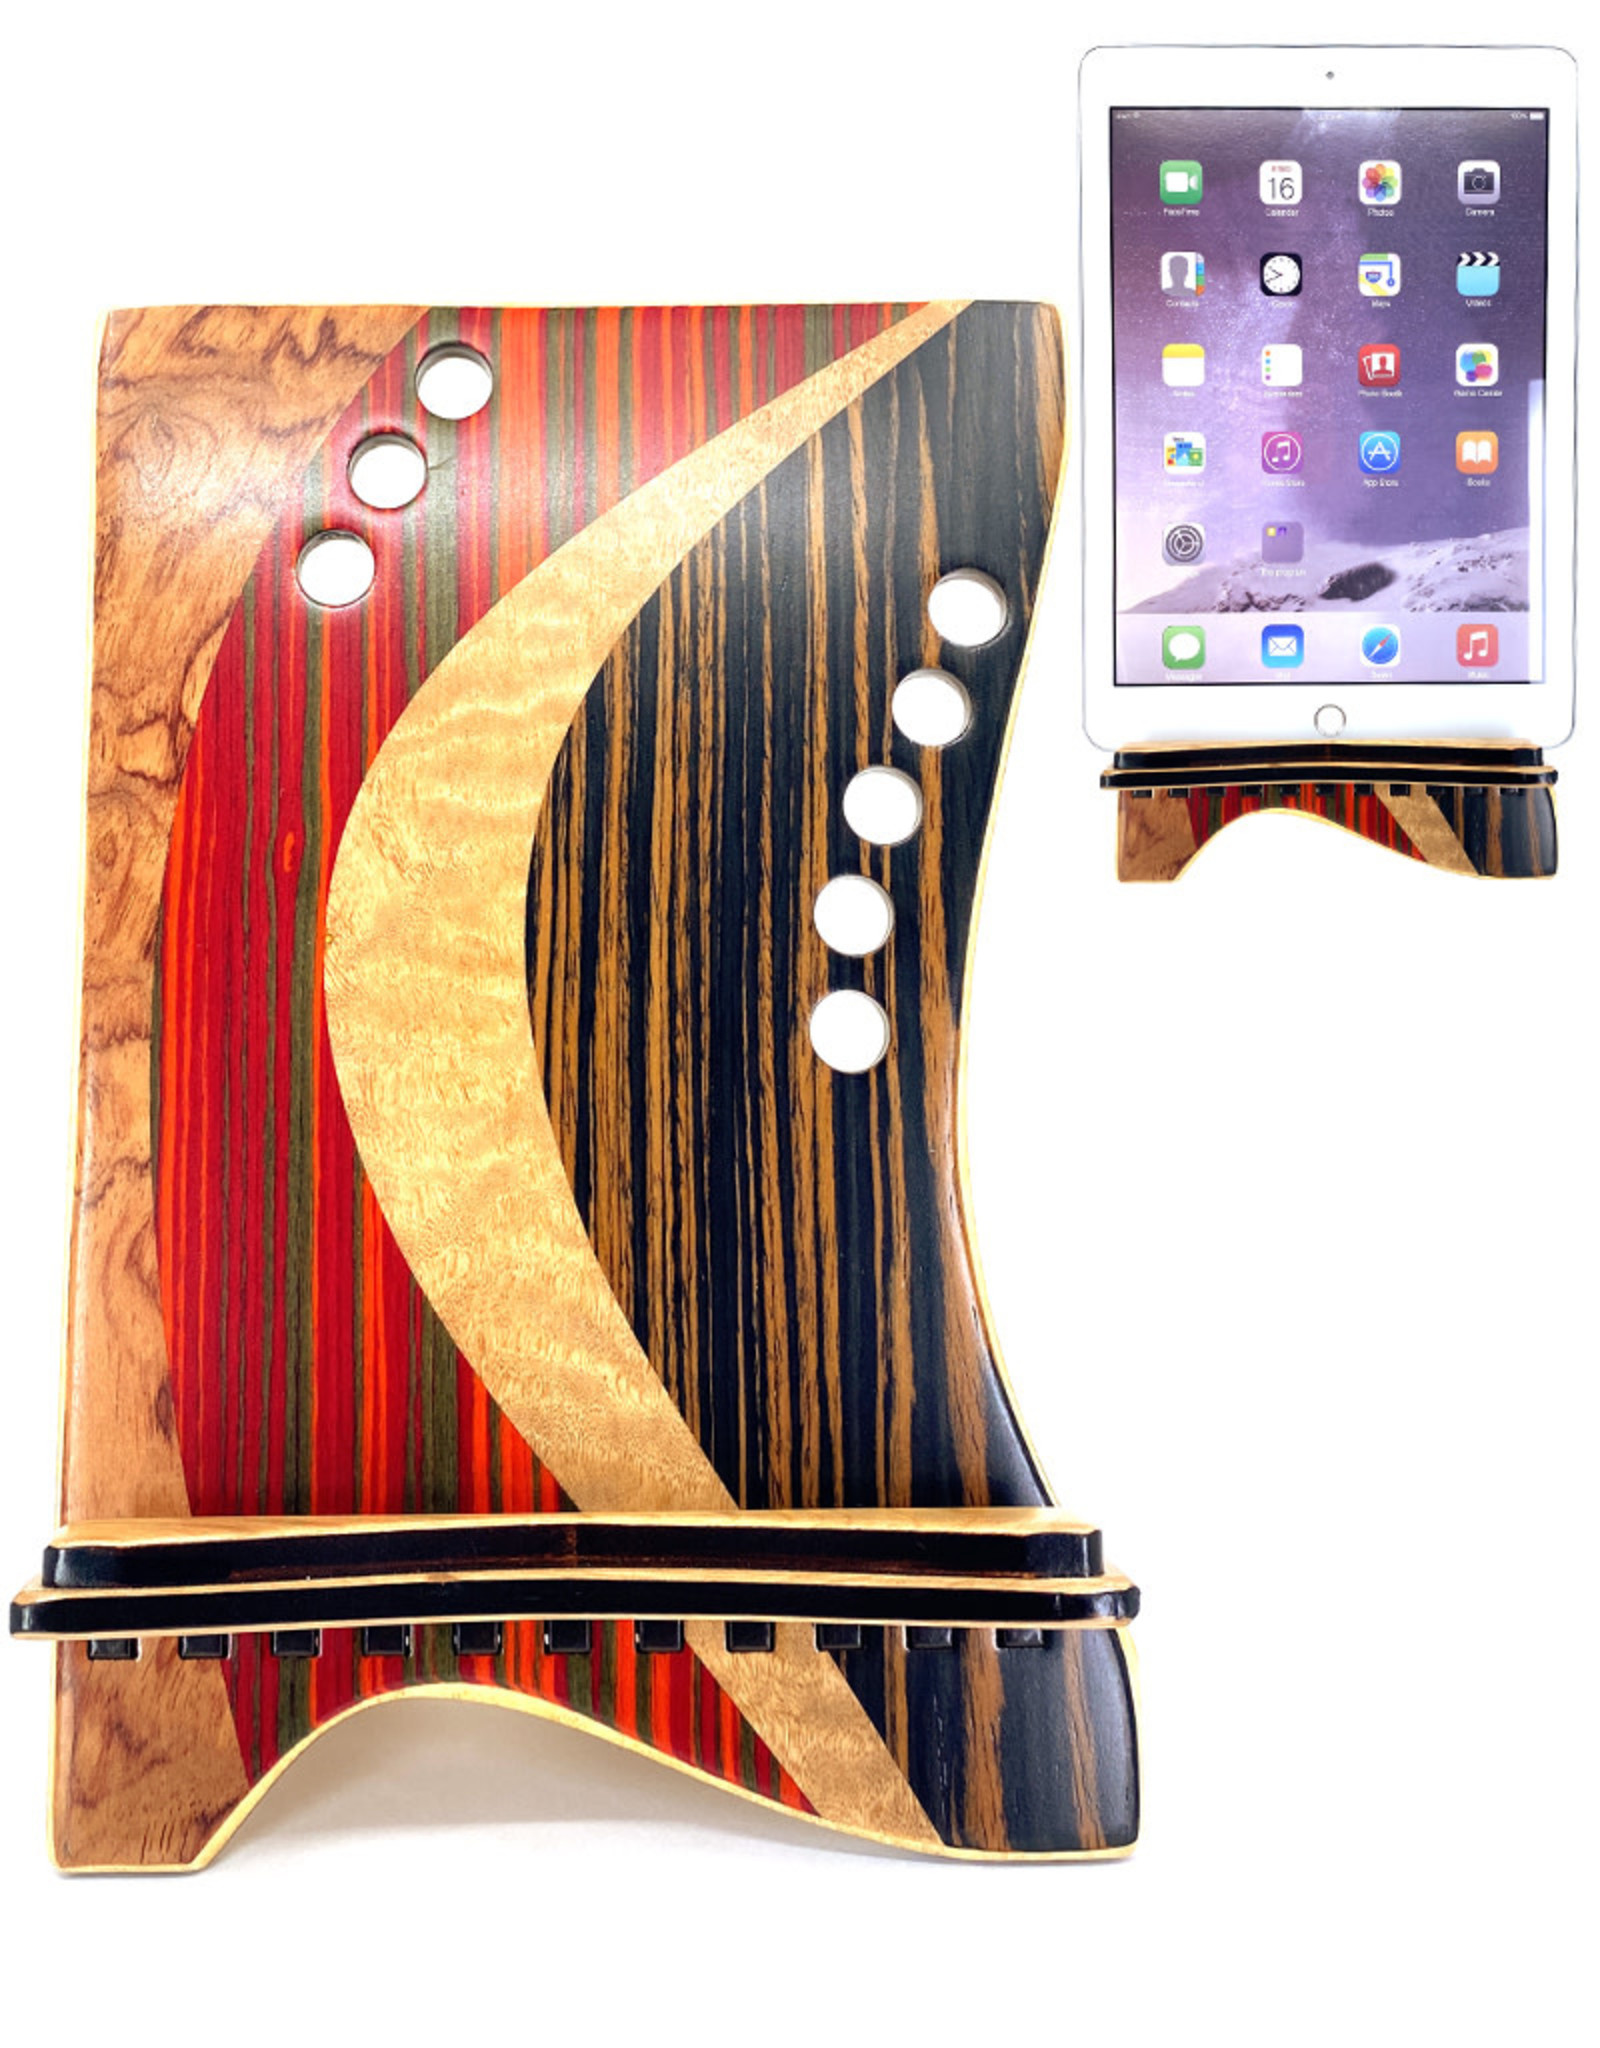 LOST ART WOODWORKS RED & BROWN STRIPED MARQUETRY INLAID TABLET STAND